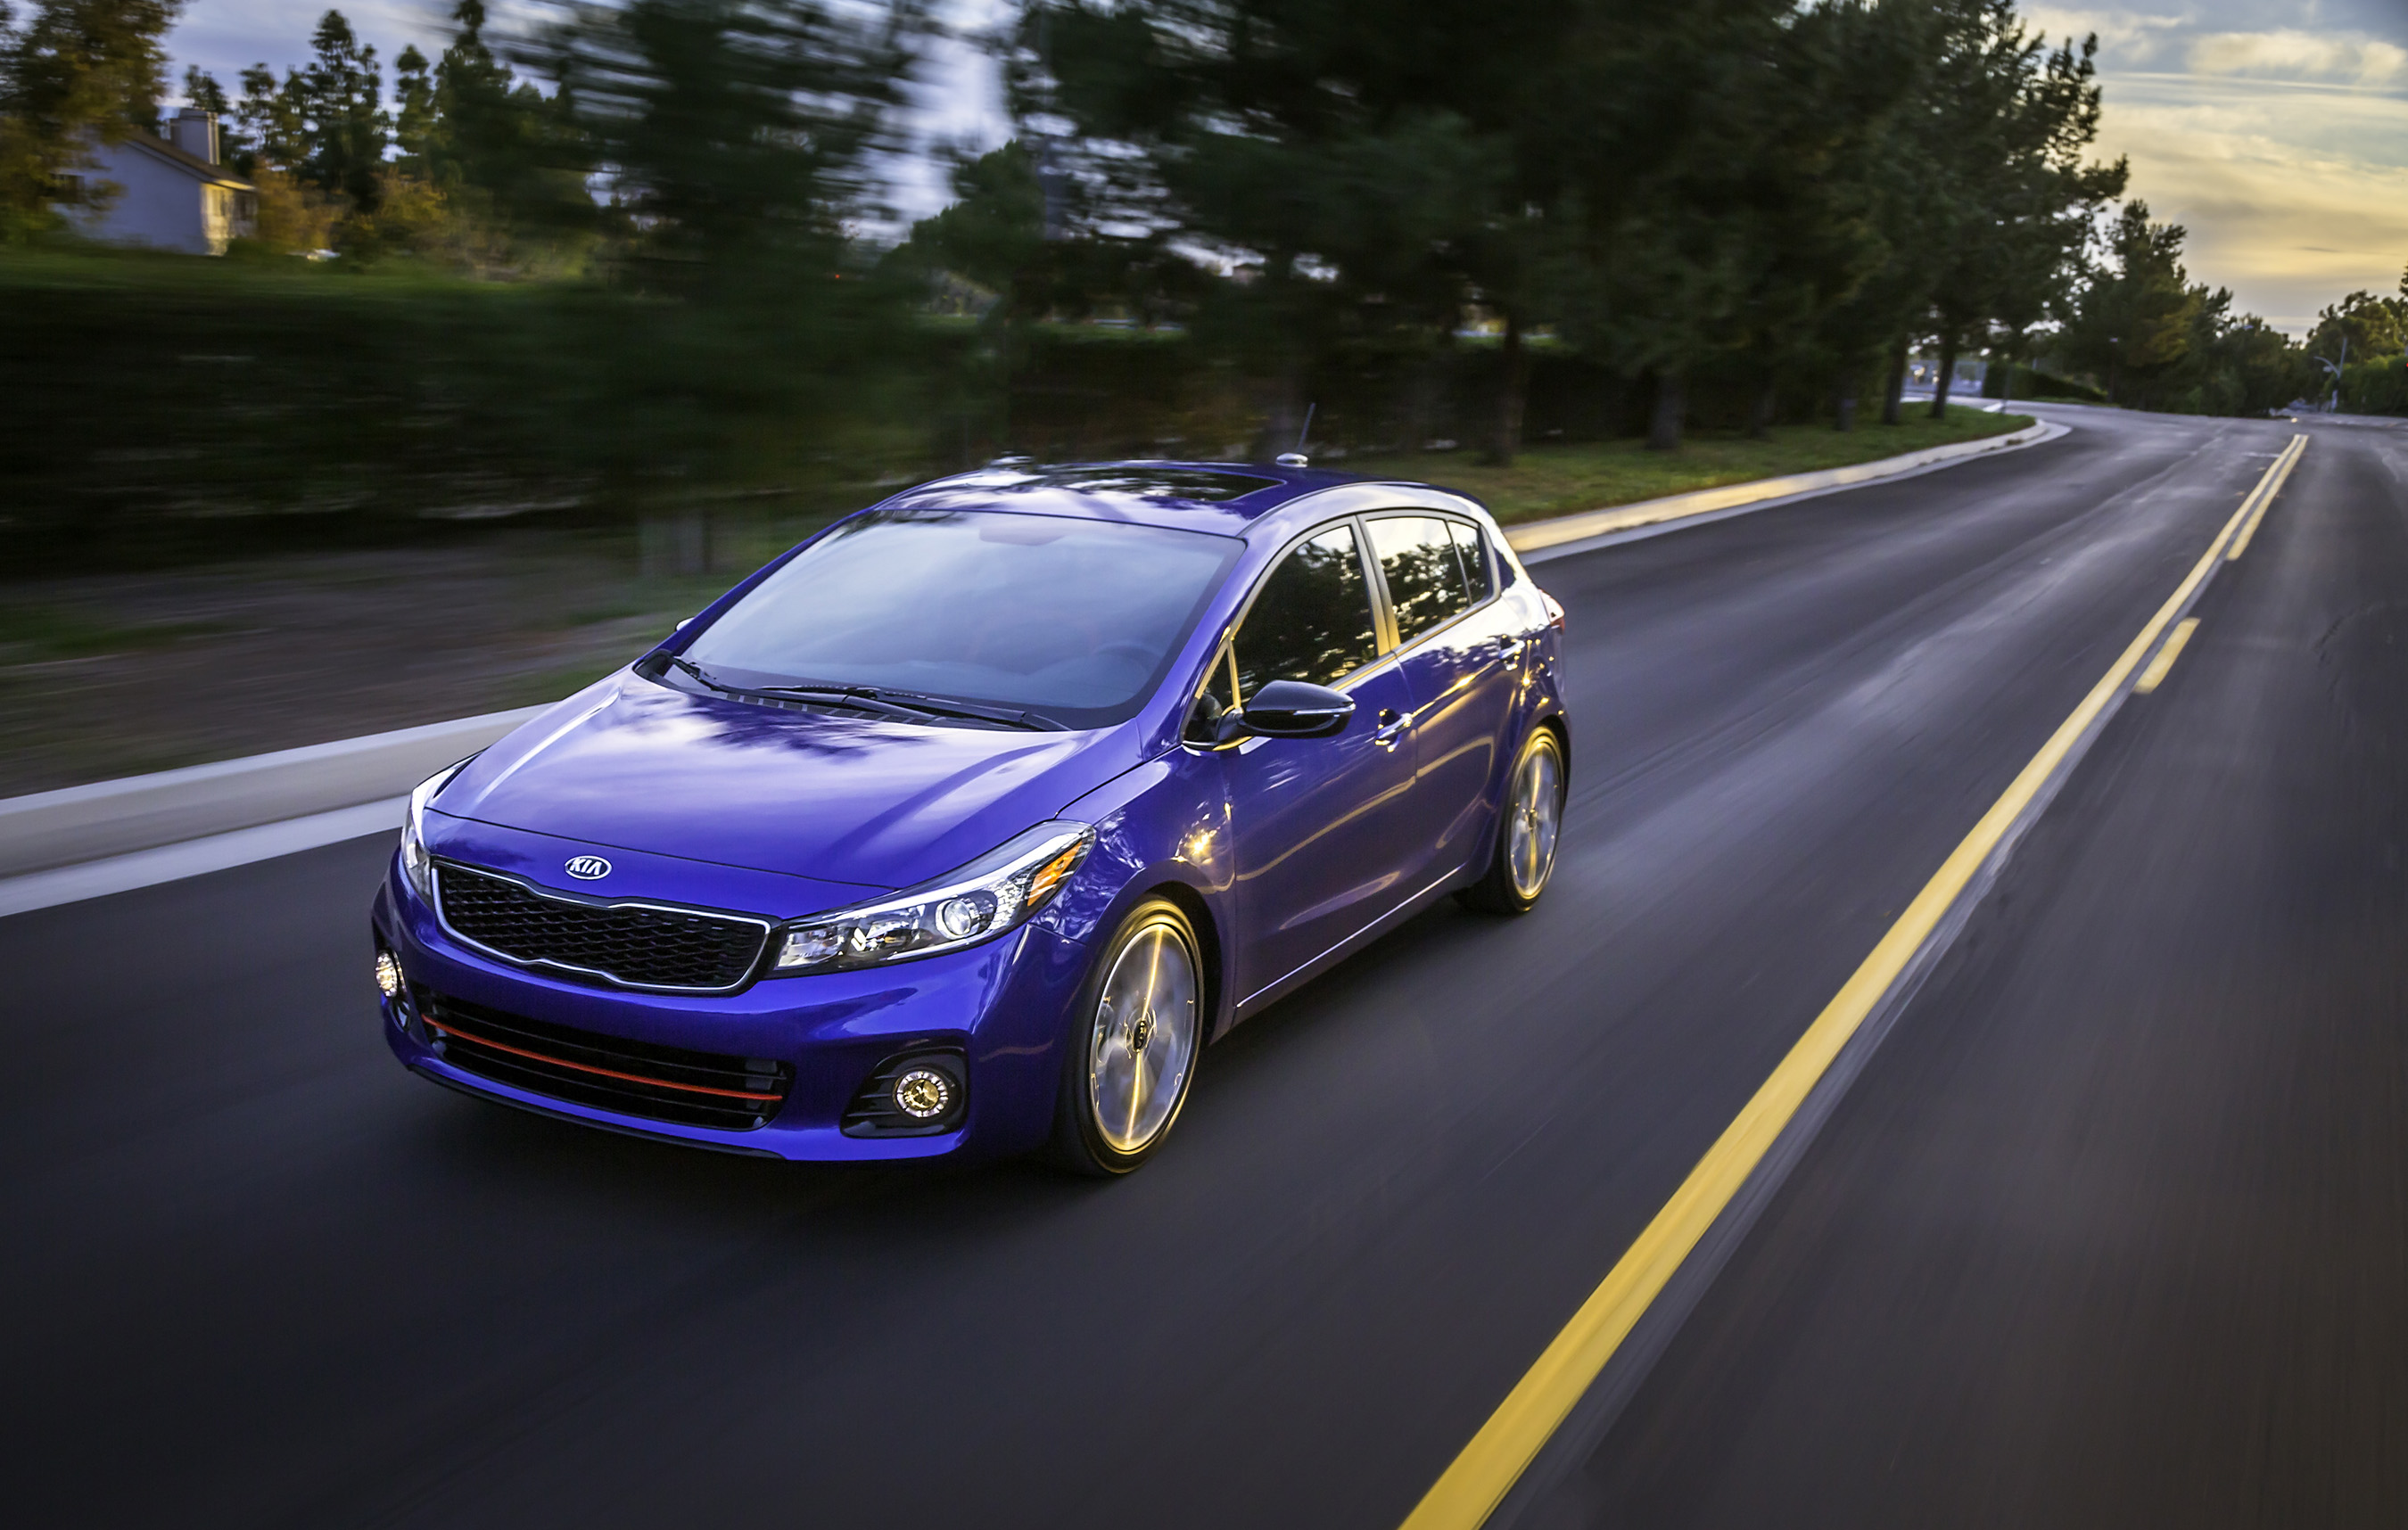 Kia today unveiled the refreshed 2017 Forte5 alongside its similarly updated sedan sibling at the North American International Auto Show.